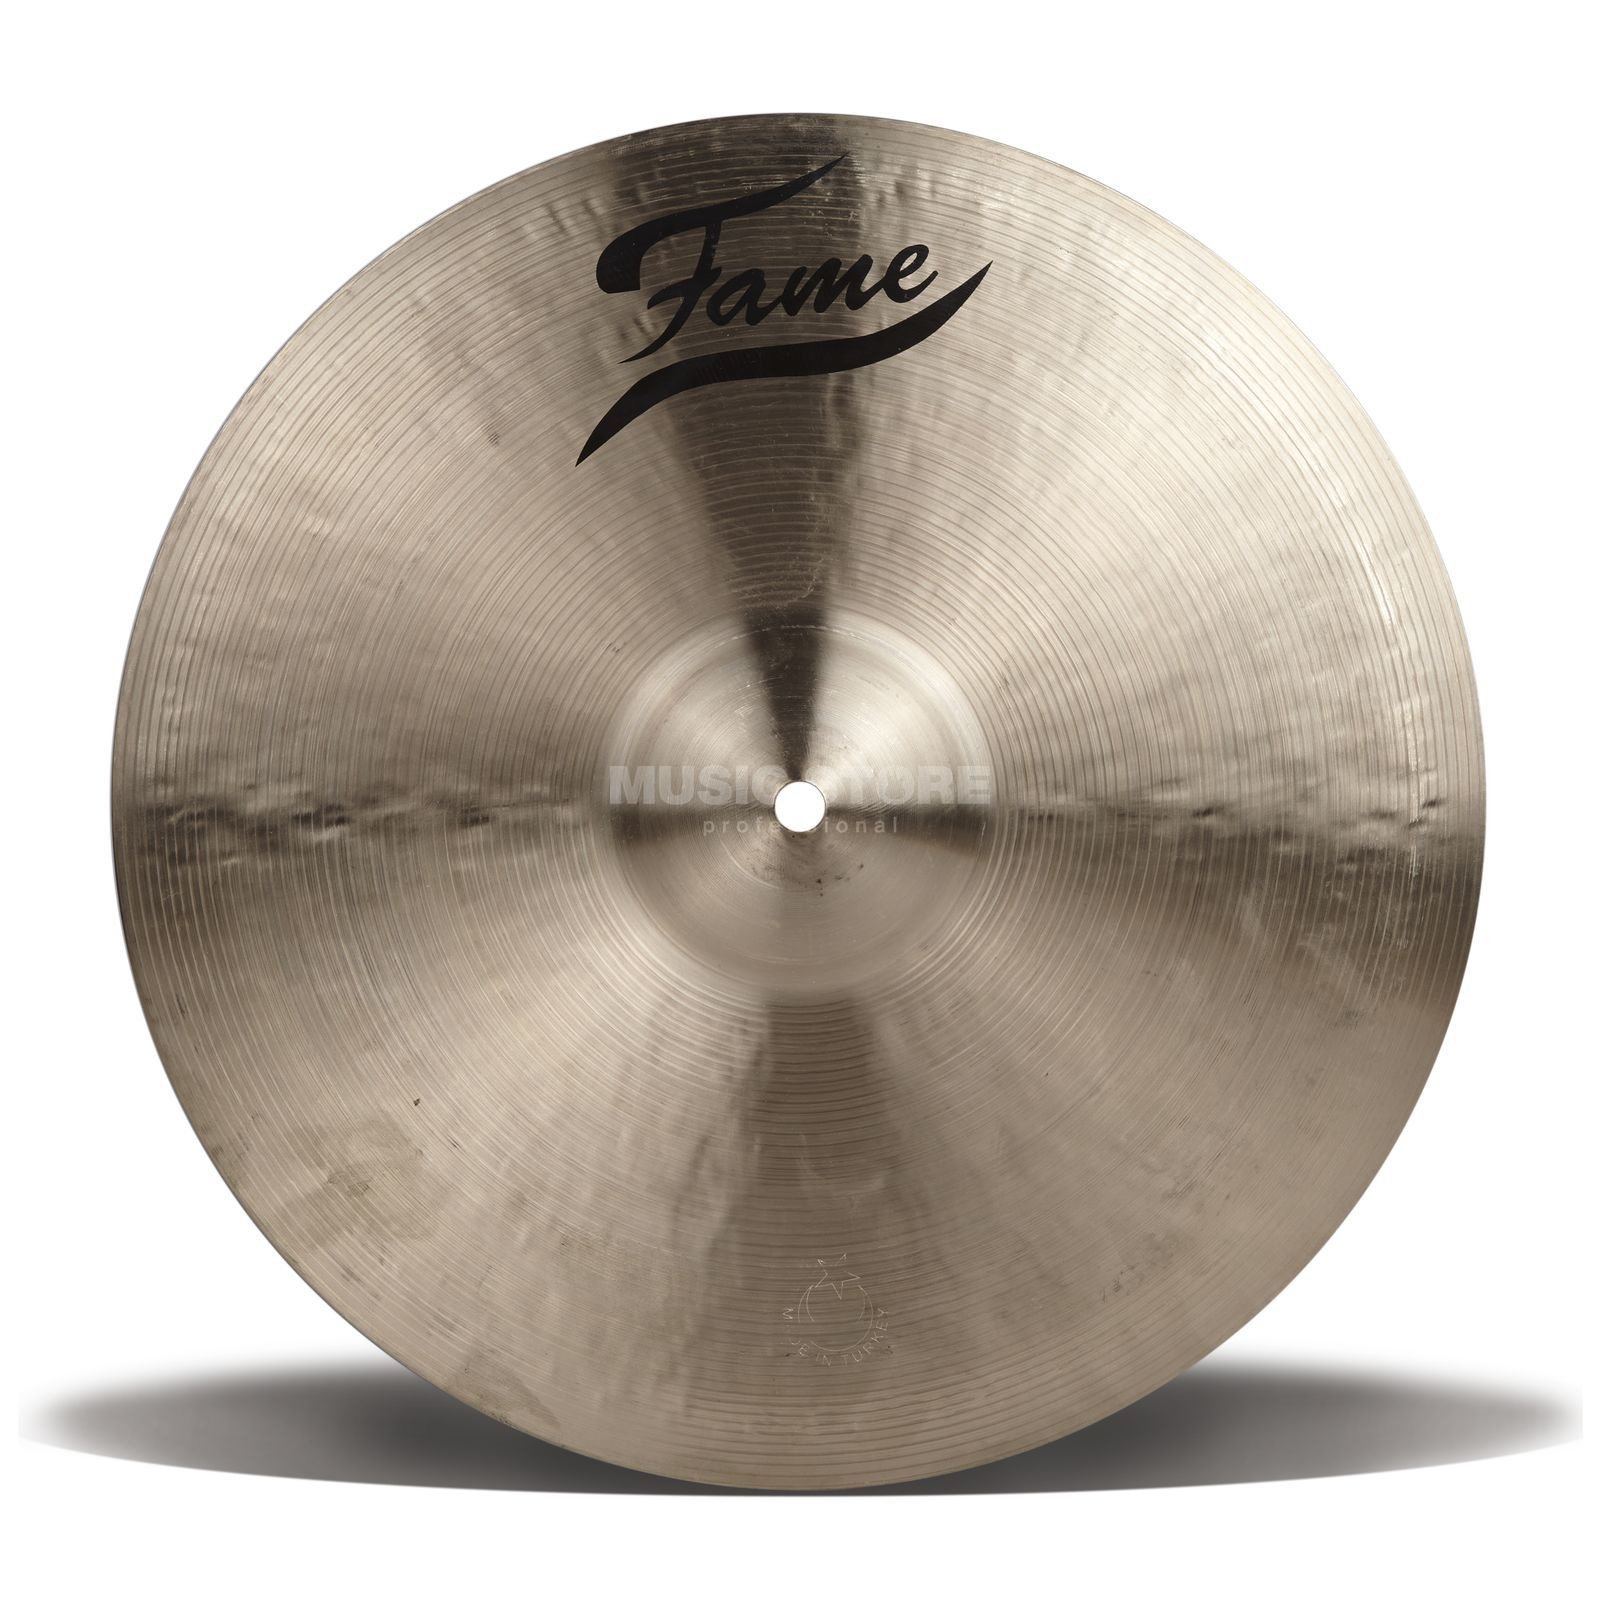 "Fame Masters B20 Thin Crash 14"", Natural Finish Produktbild"